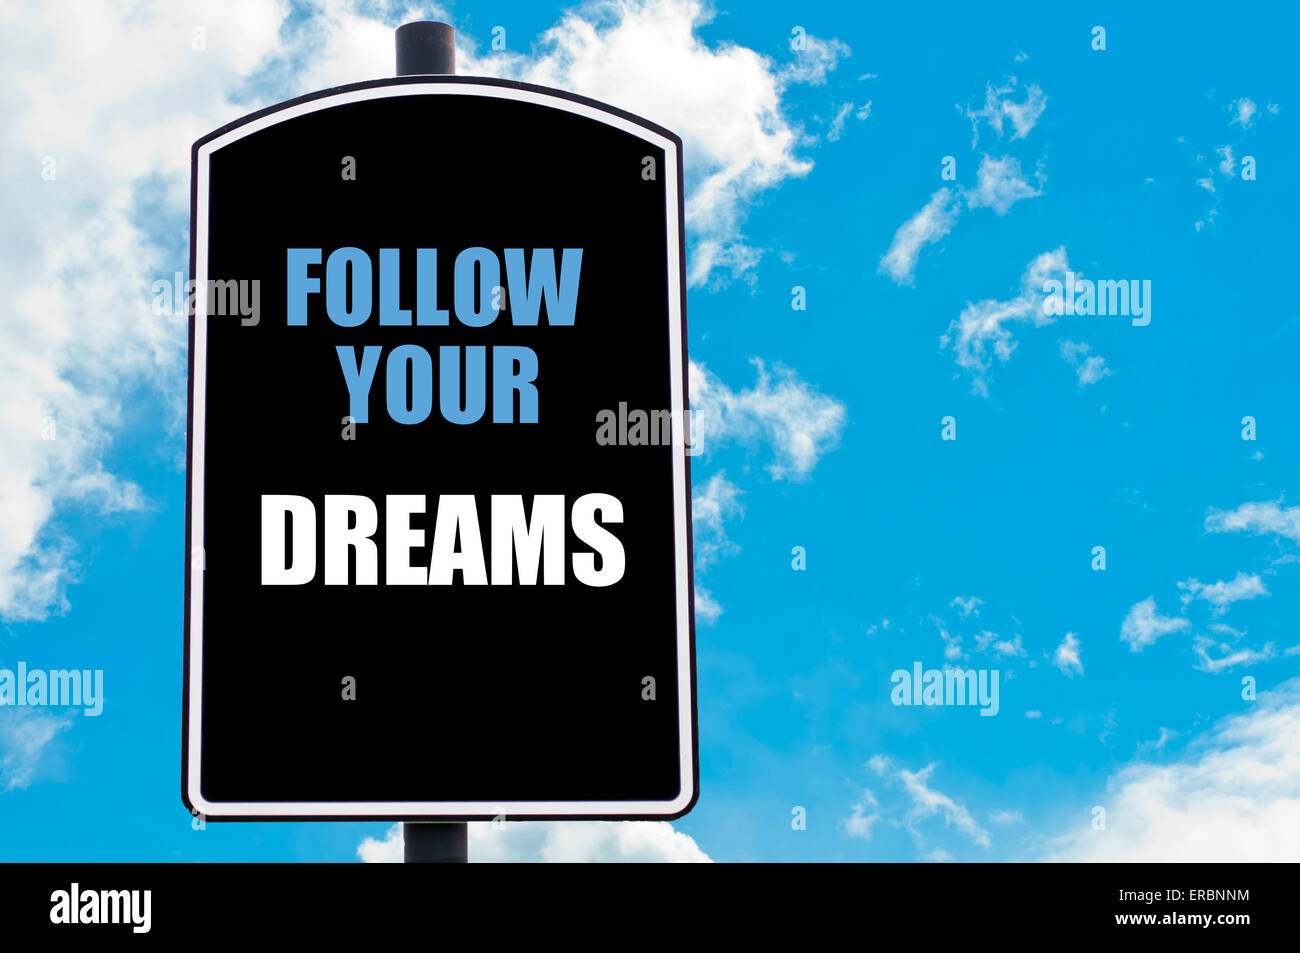 FOLLOW YOUR DREAMS Motivational Quote Written On Road Sign Isolated Over  Clear Blue Sky Background With Available Copy Space